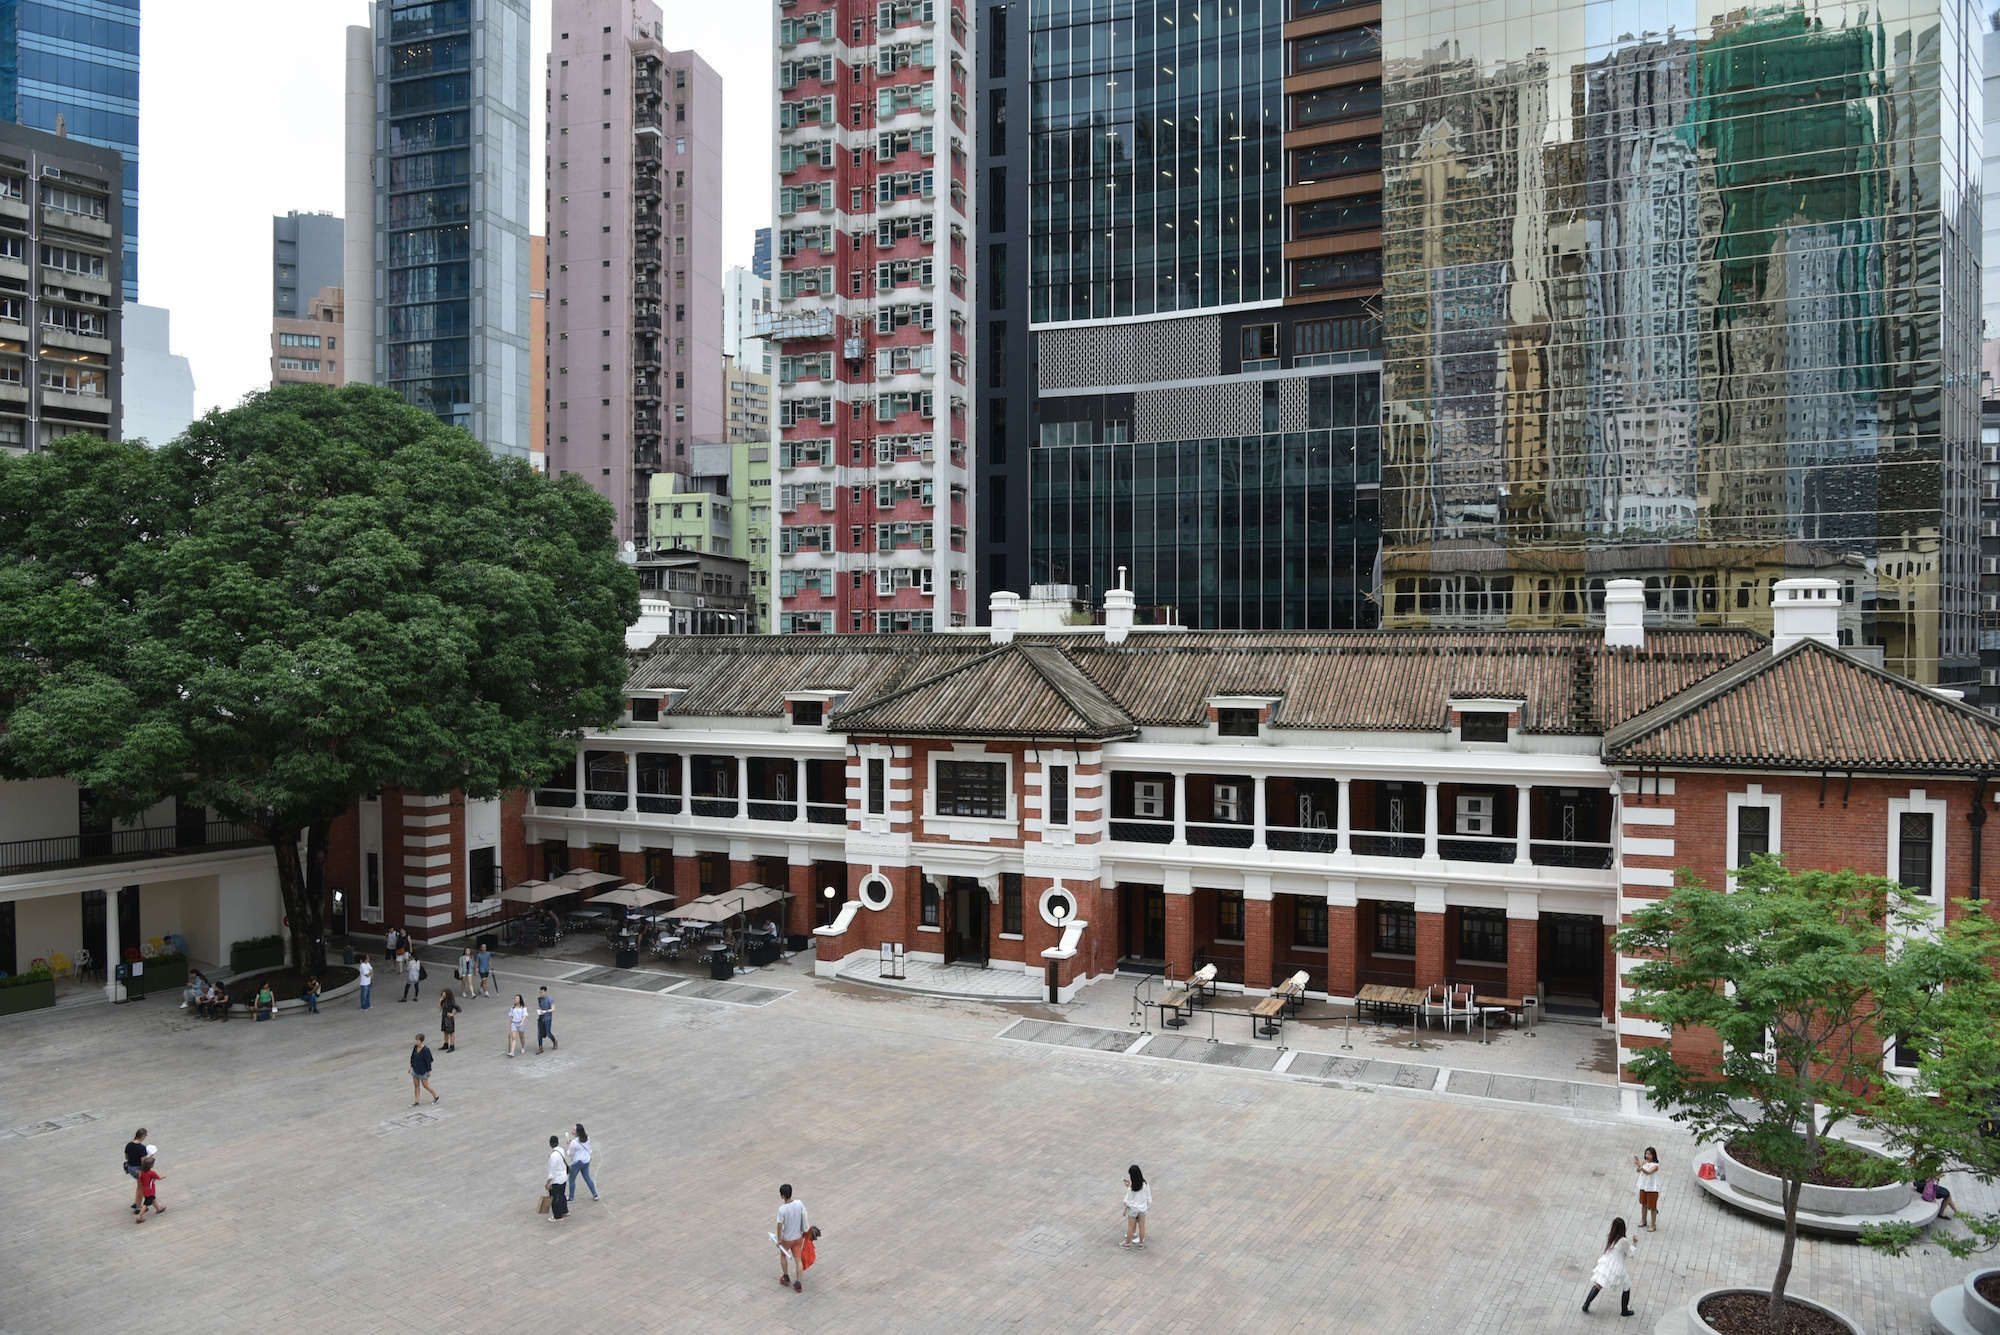 8 Places In Hong Kong To Learn About Local Heritage And Culture